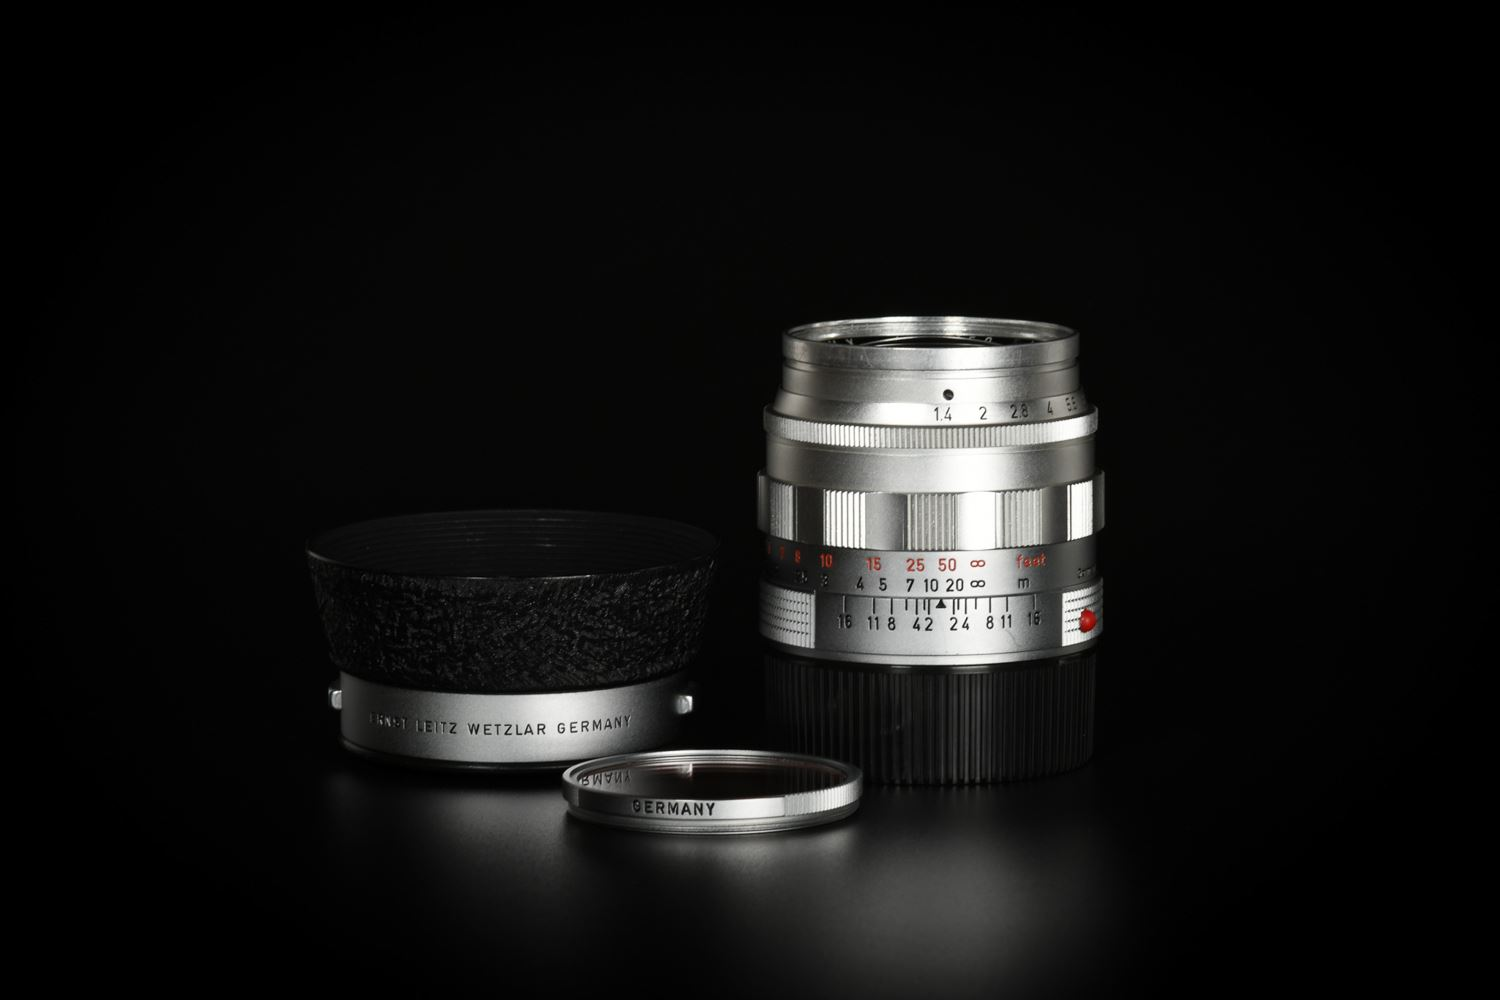 Picture of Leica Summilux-M 50mm f/1.4 Ver.1 Silver Reverse Scallop